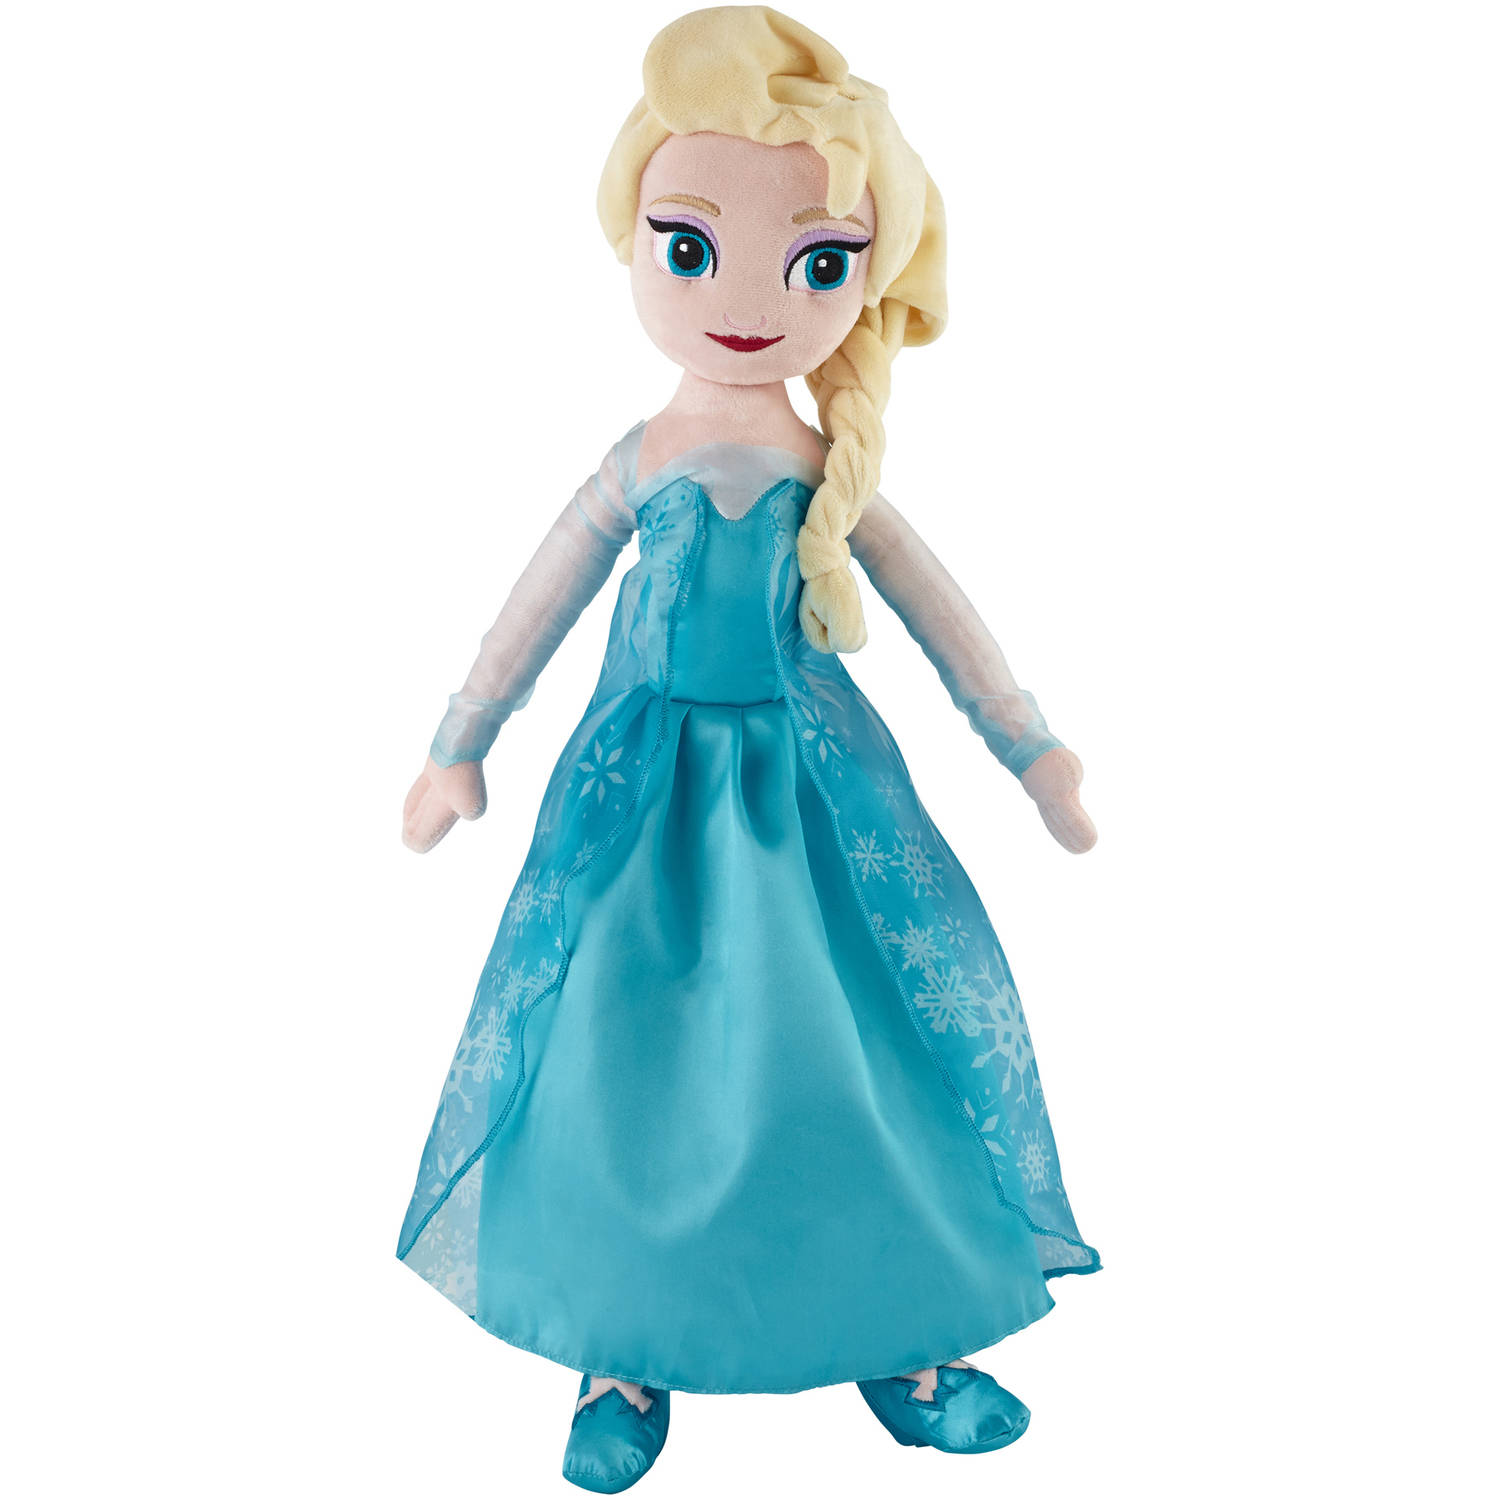 Disney's Frozen Elsa Pillow Buddy